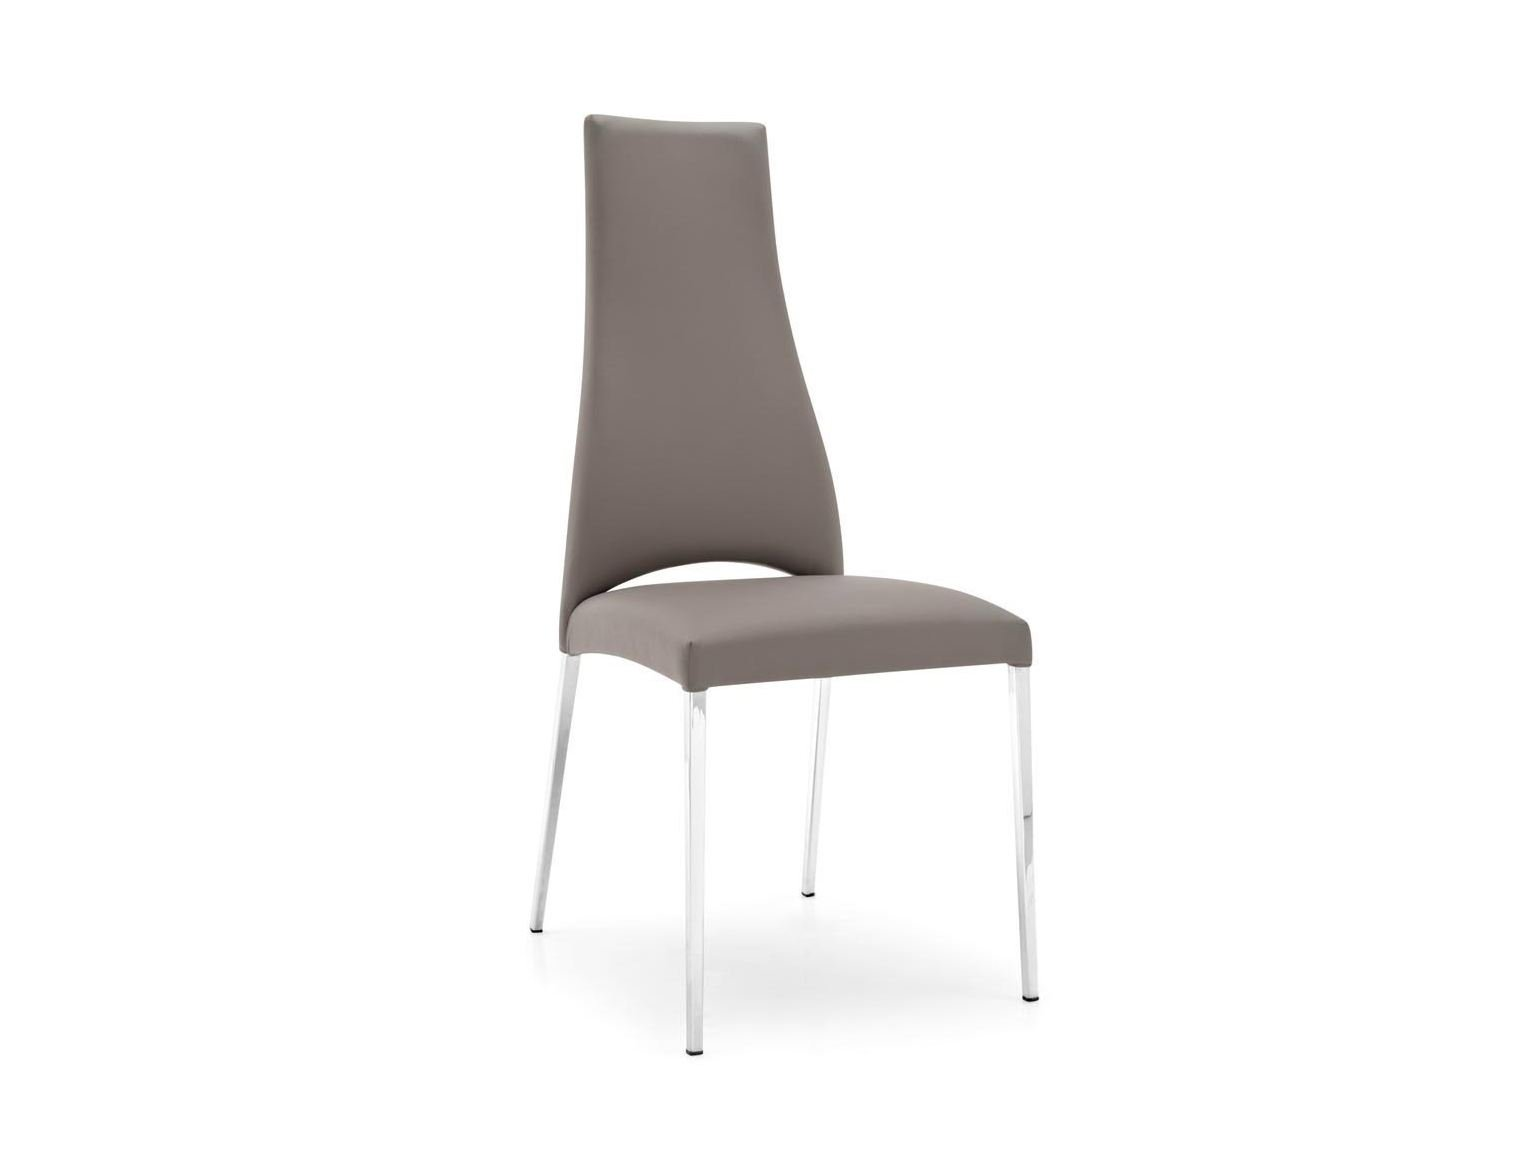 juliet sedia by calligaris design studio 28 On sedia juliet calligaris prezzo